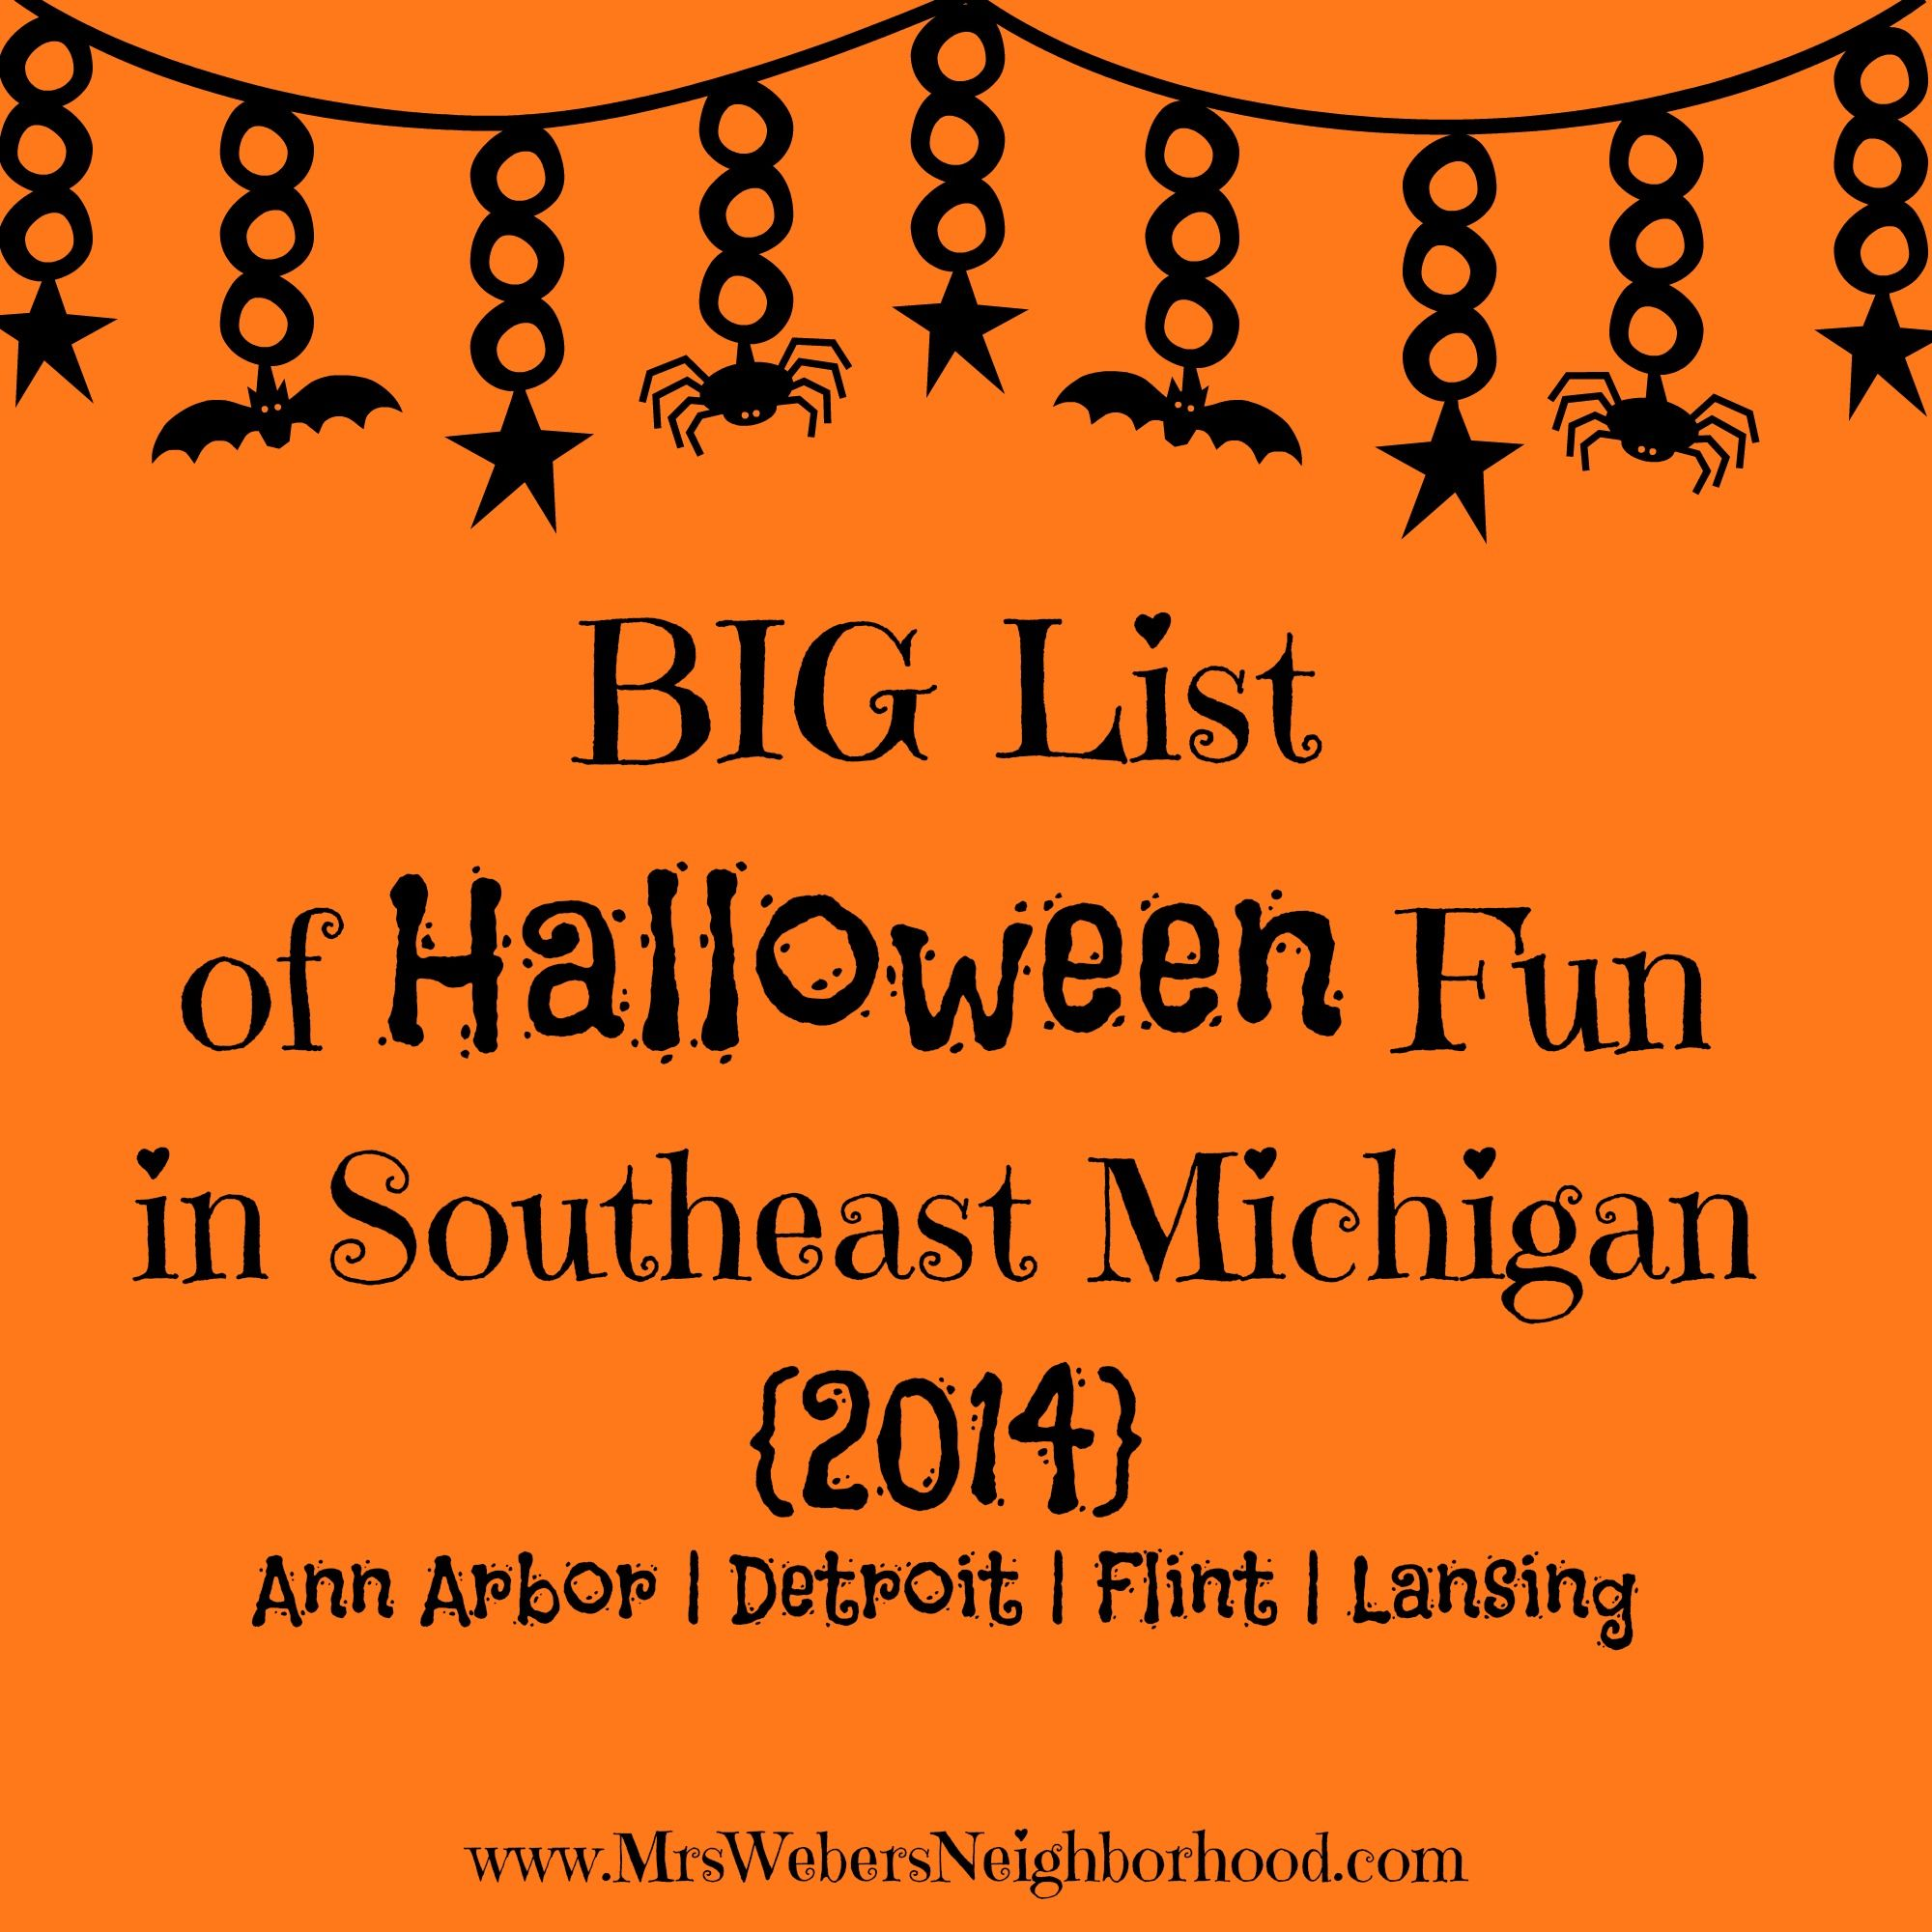 BIG List of Halloween Fun in Southeast Michigan 2014 - Ann Arbor, Detroit, Flint and Lansing areas.